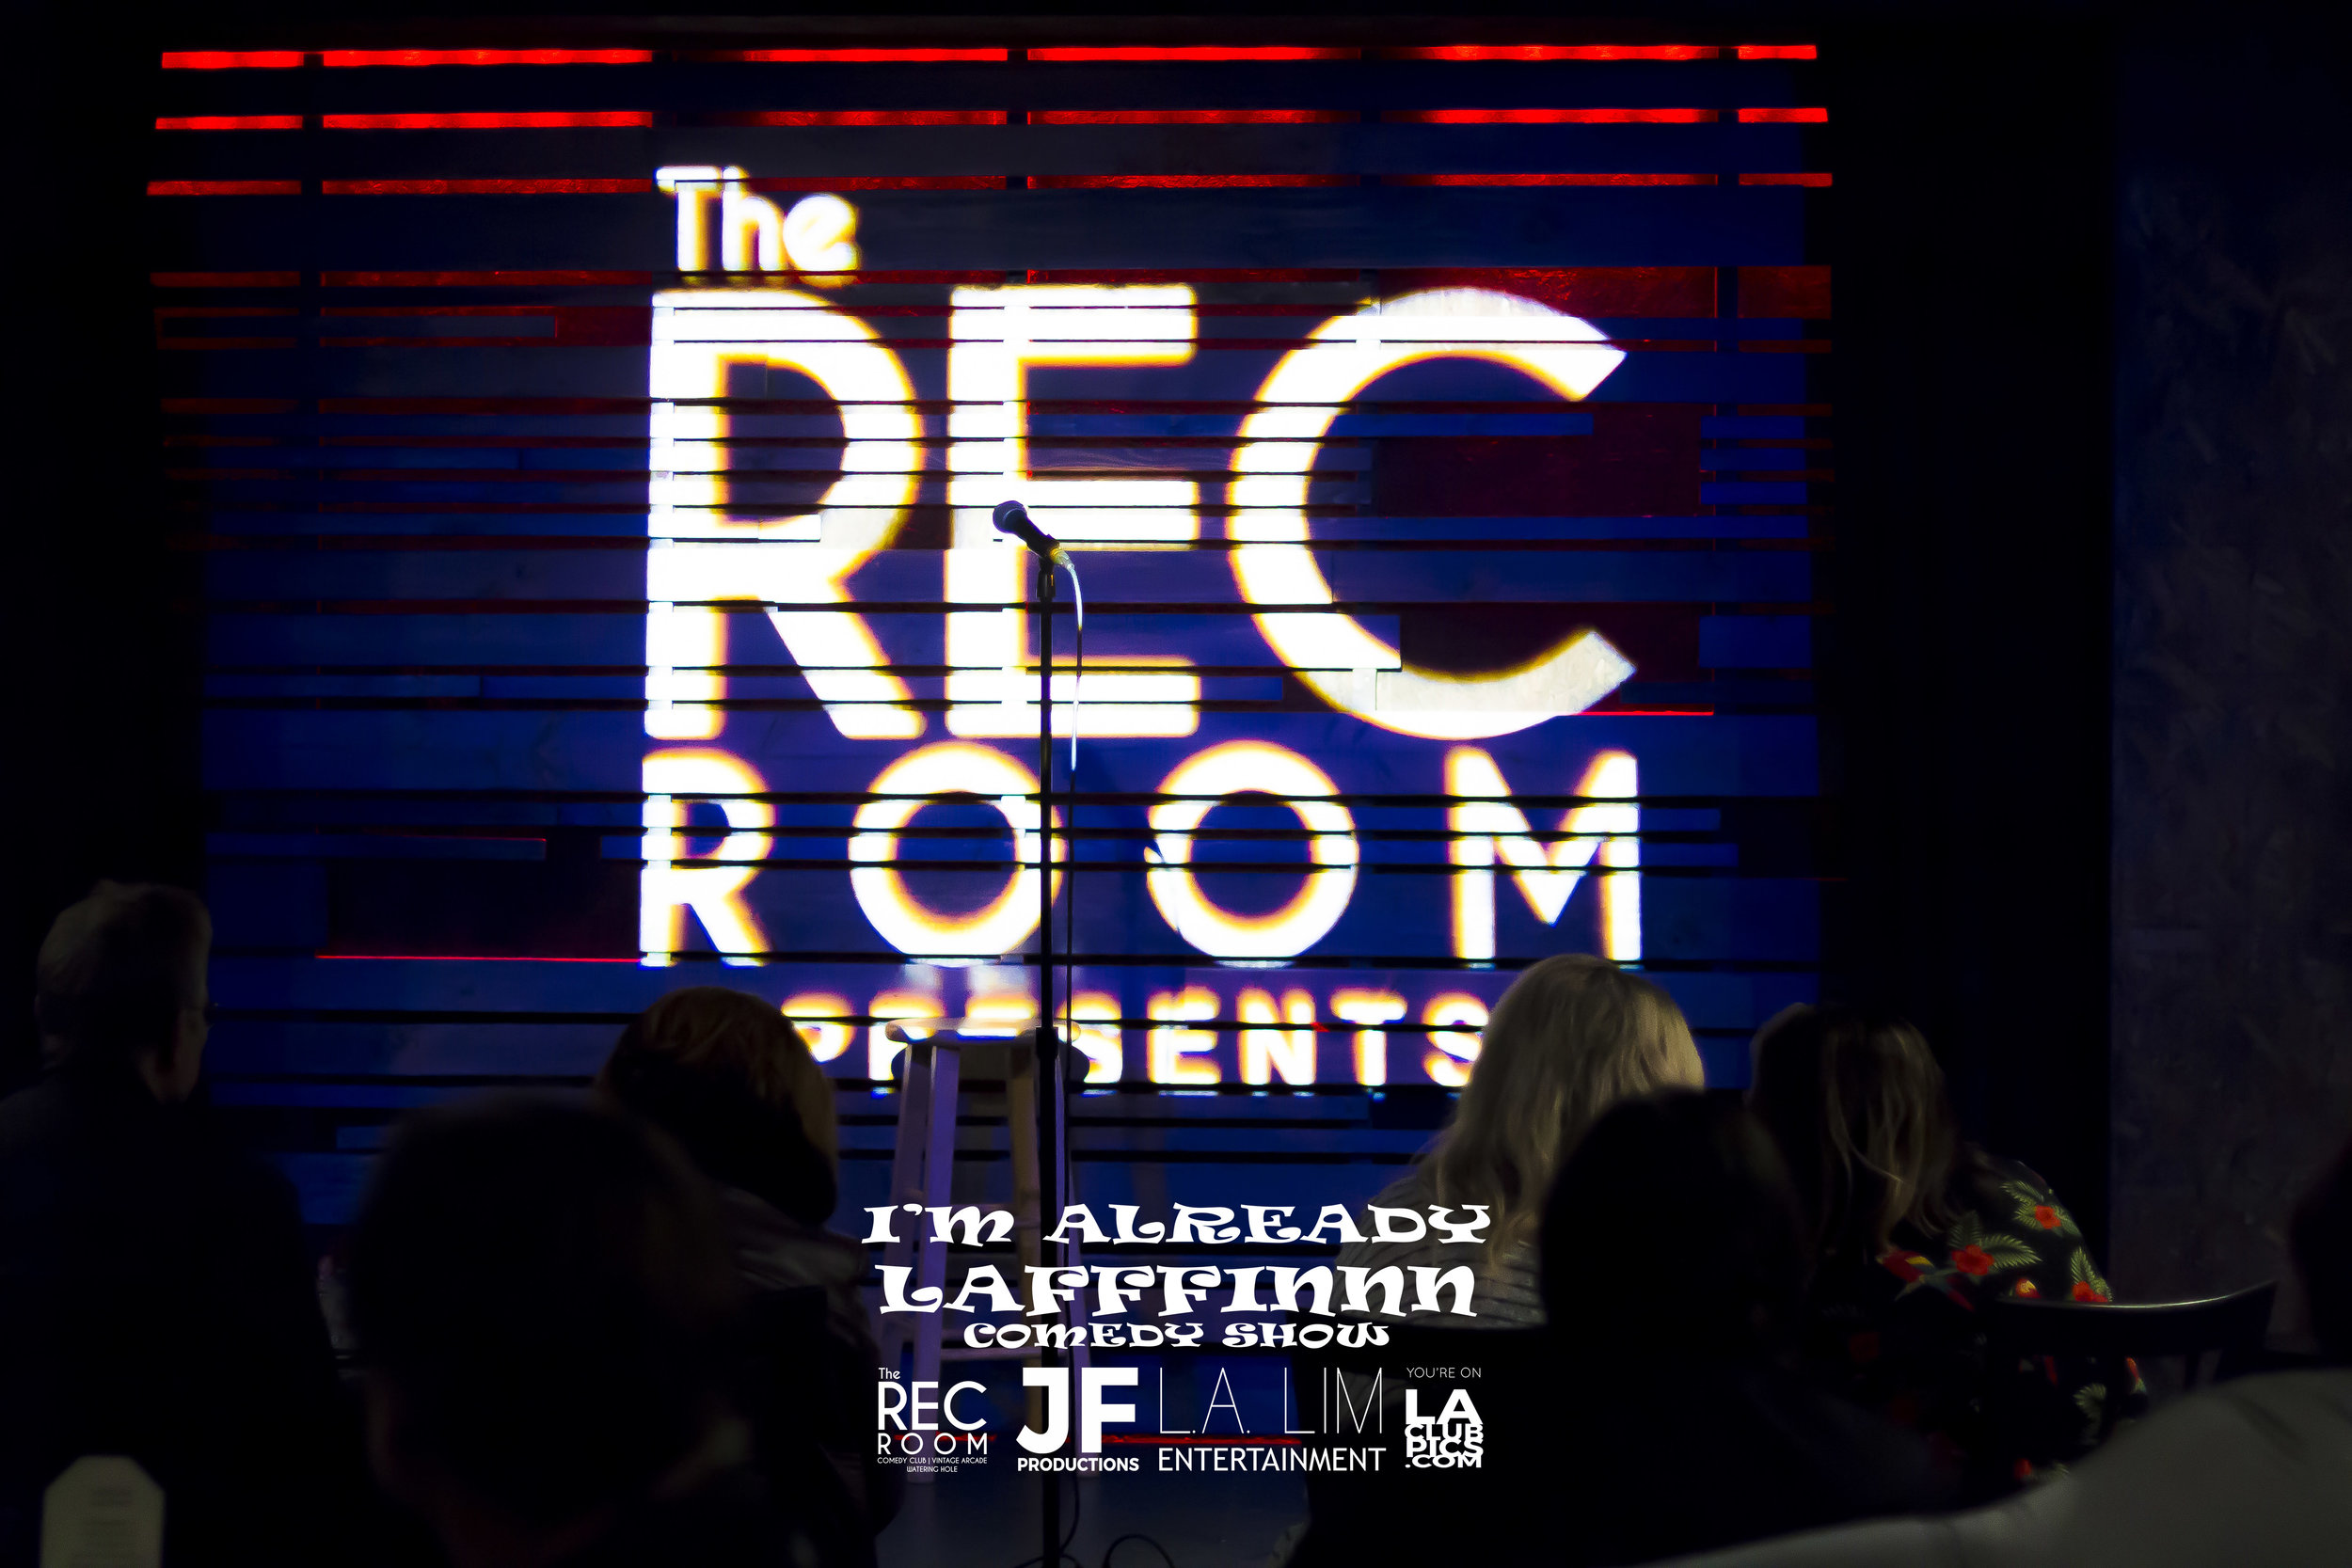 The Rec Room Huntington Beach Stage